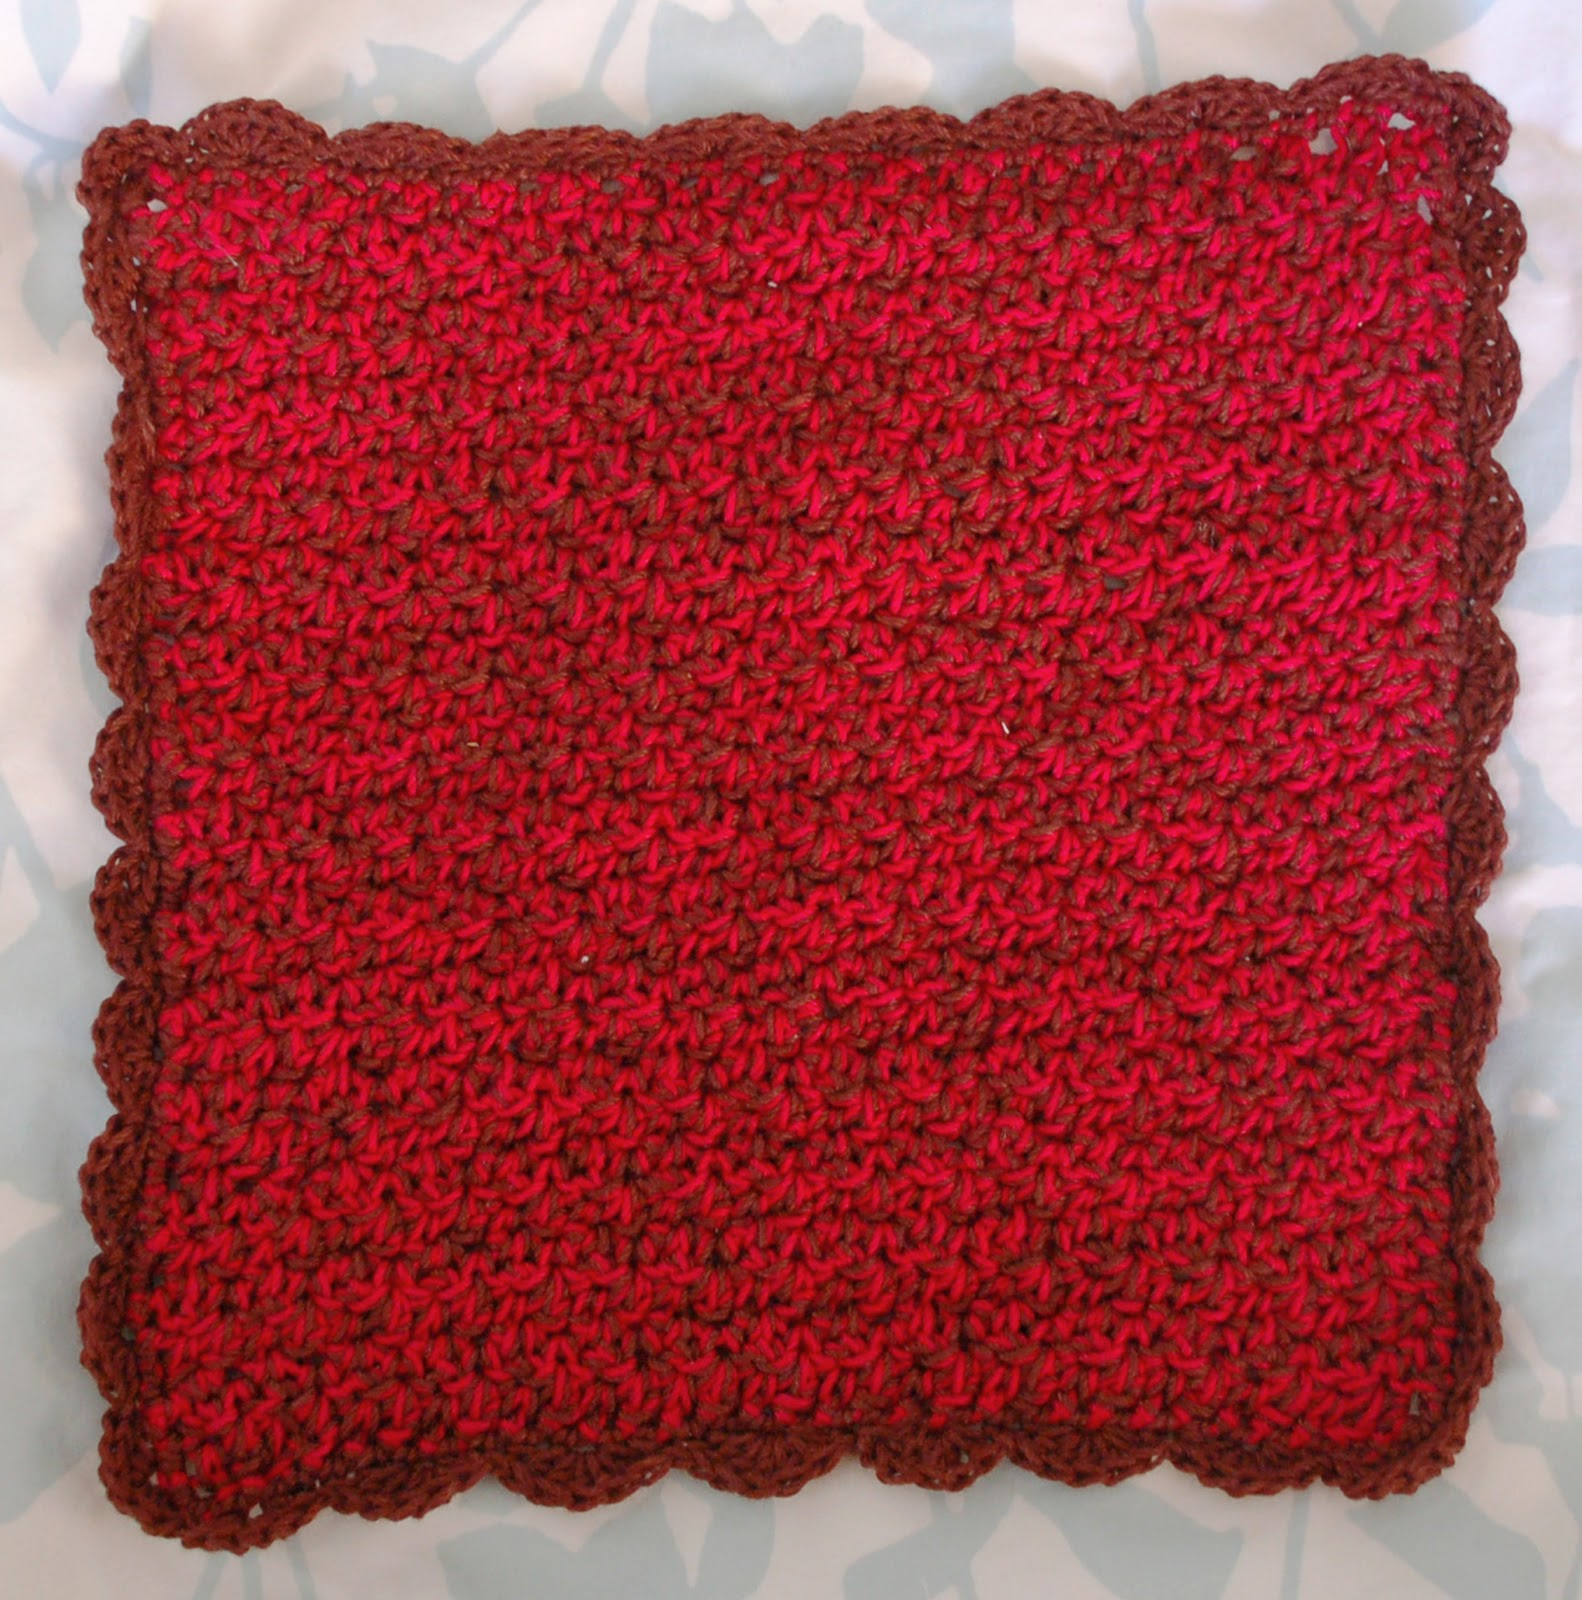 Free Crochet Patterns Using Size 3 Thread : Alli Crafts: Free Pattern: Washcloth or Dishcloth-Size 3 ...